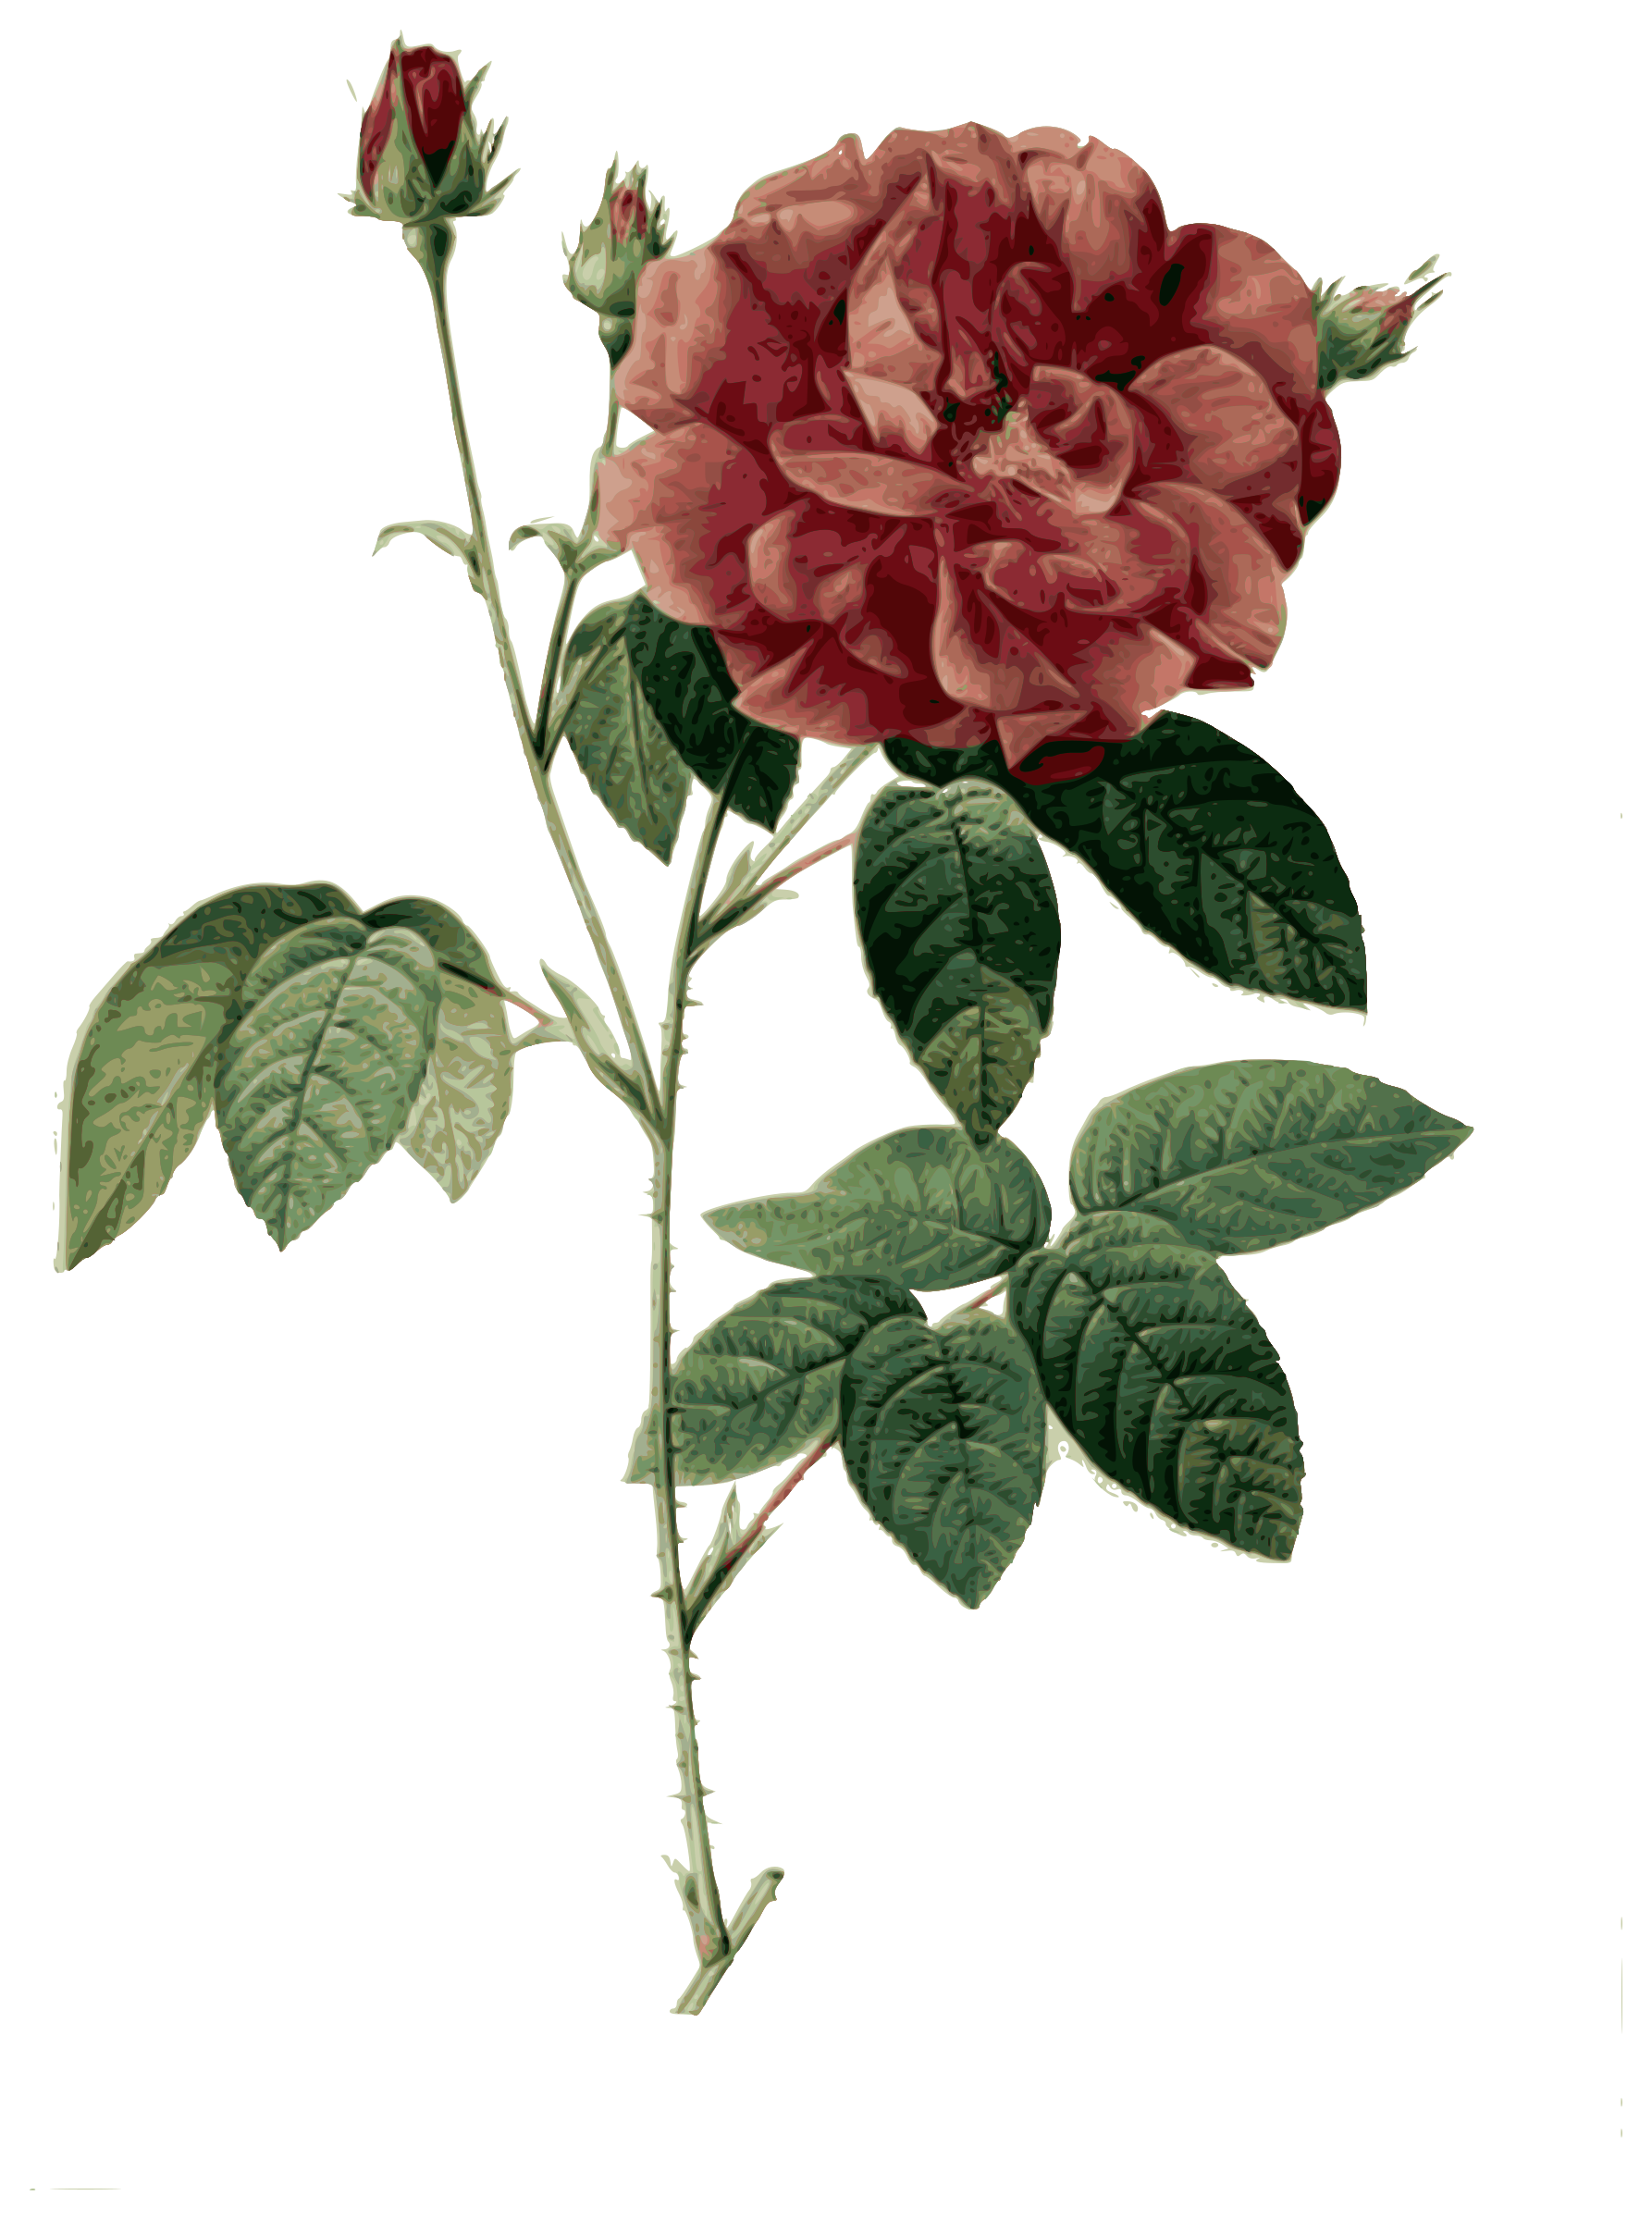 Redoute - Rosa gallica officinalis - color by warszawianka